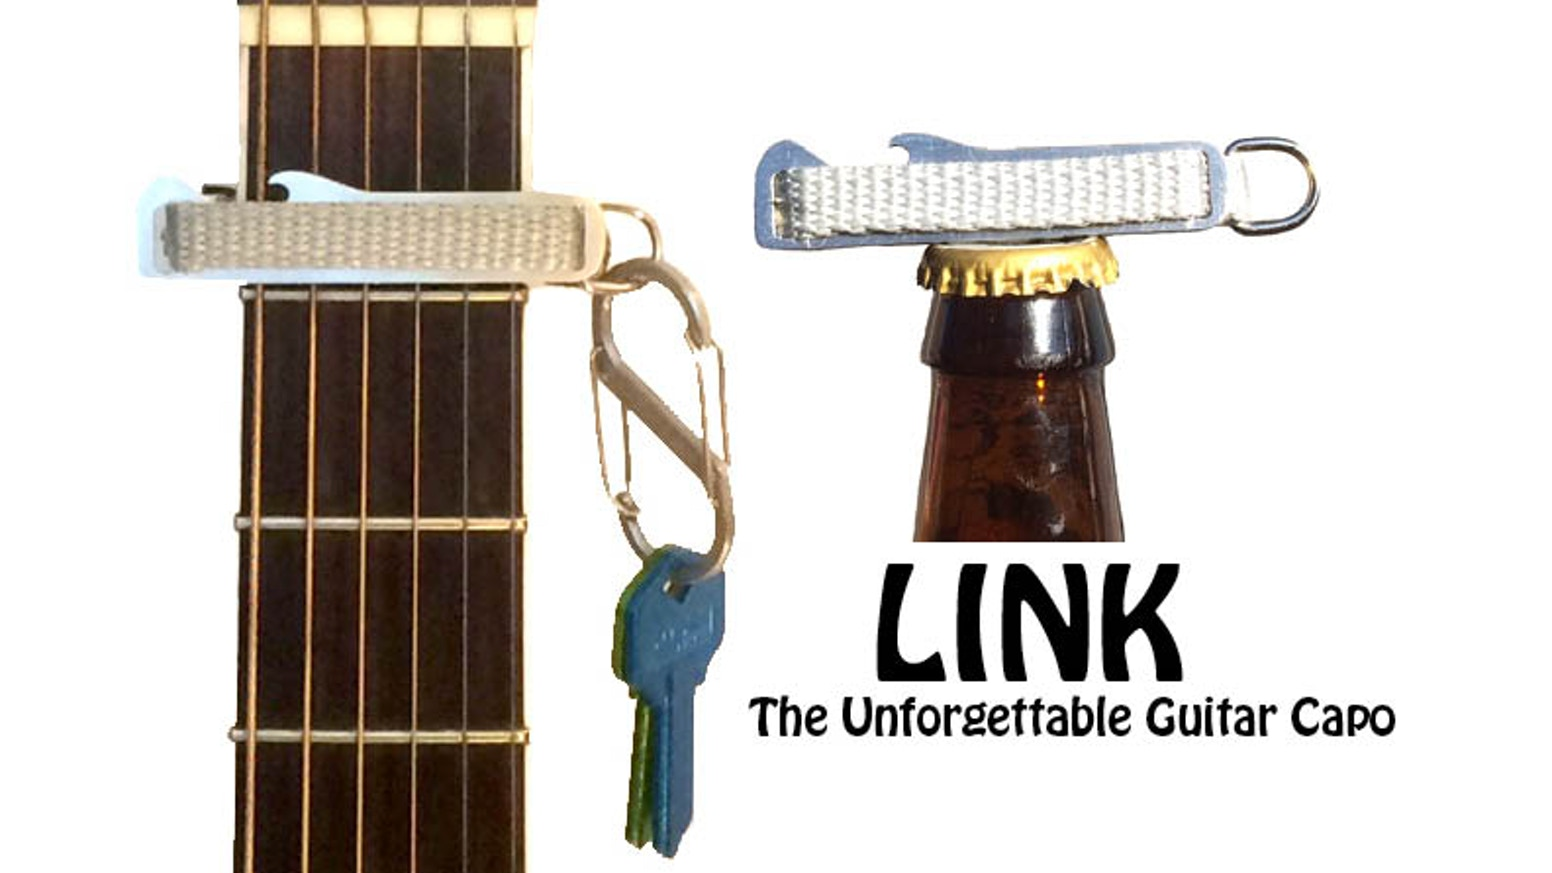 LINK The Unforgettable Guitar Capo. Simply attach it to your key ring, guitar strap or gig bag zipper.